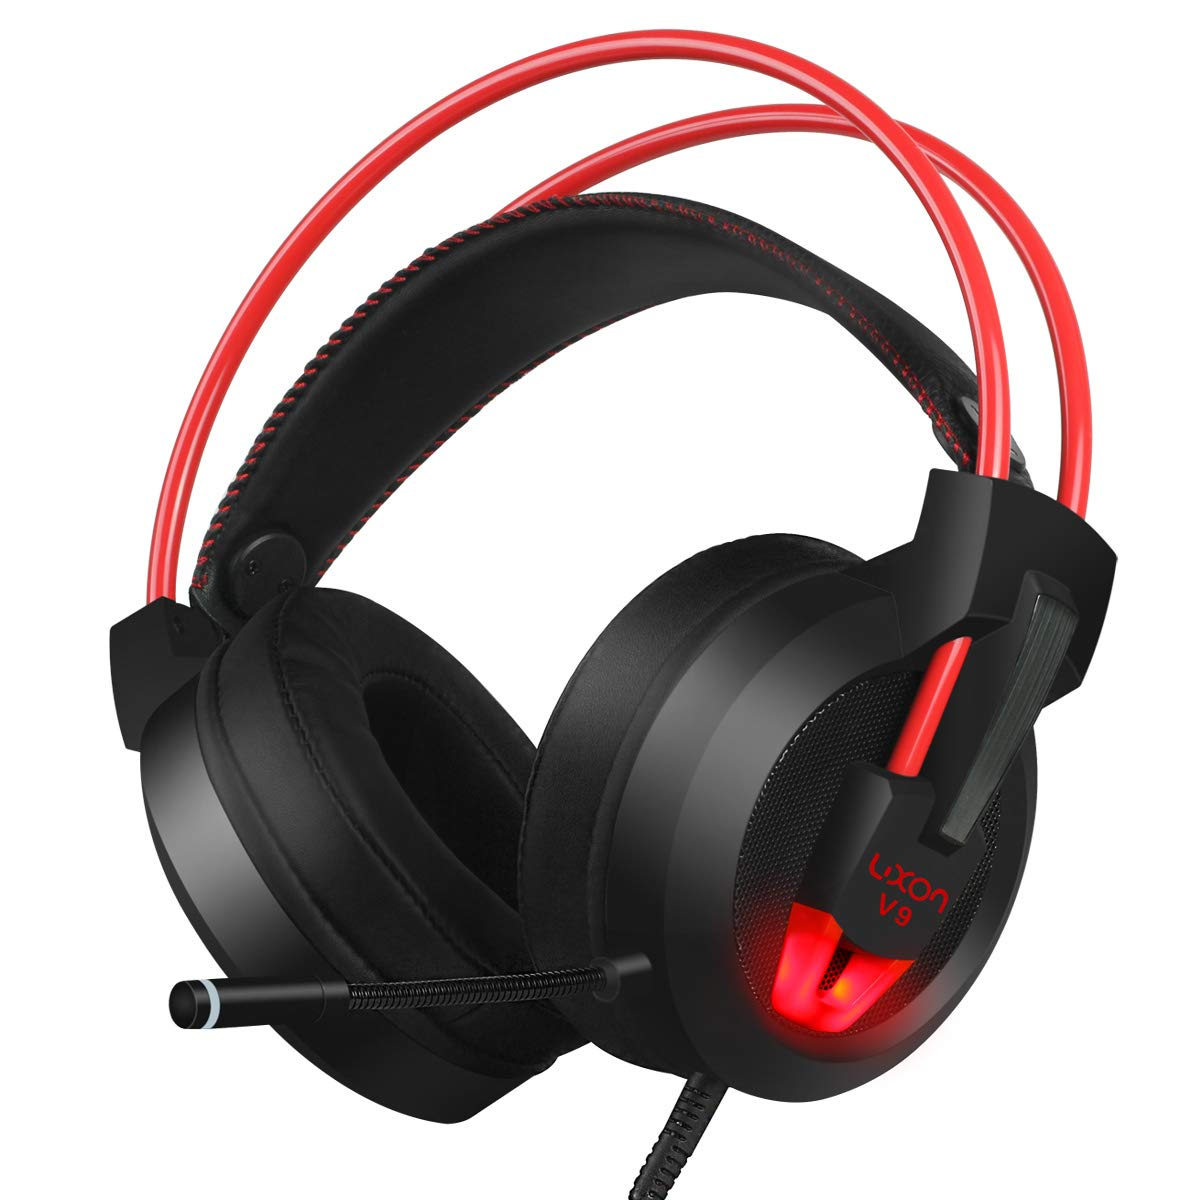 PC Gaming Headset with Mic Virtual 7.1 Surround Stereo Sound Headphone 50MM Loudhailer Gaming Headphones with LED Light Over Ear USB Headsets for PC / Mac / Laptop Gamer